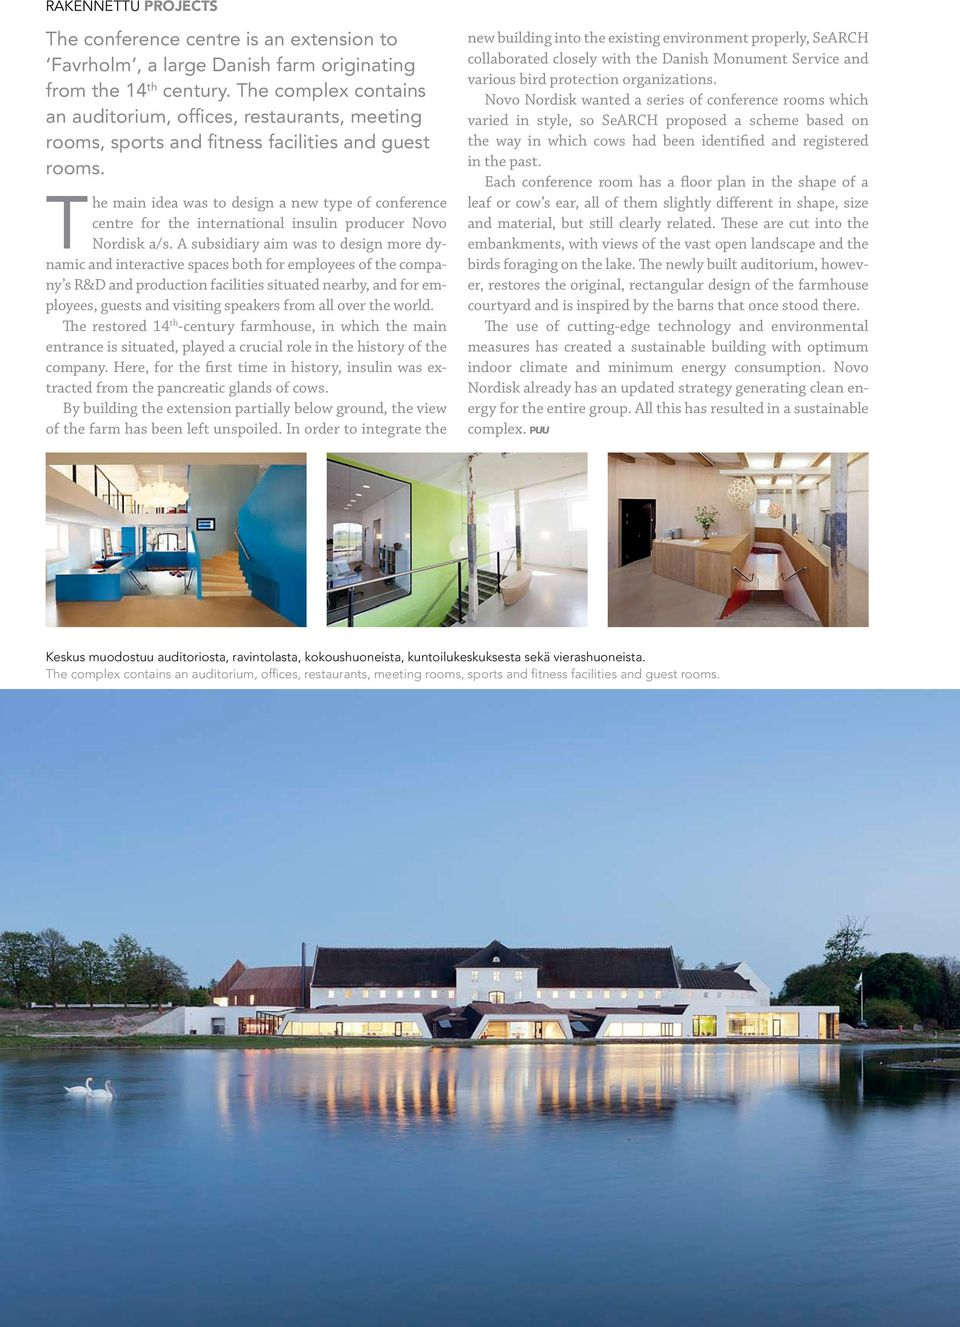 The main idea was to design a new type of conference centre for the international insulin producer Novo Nordisk a/s.